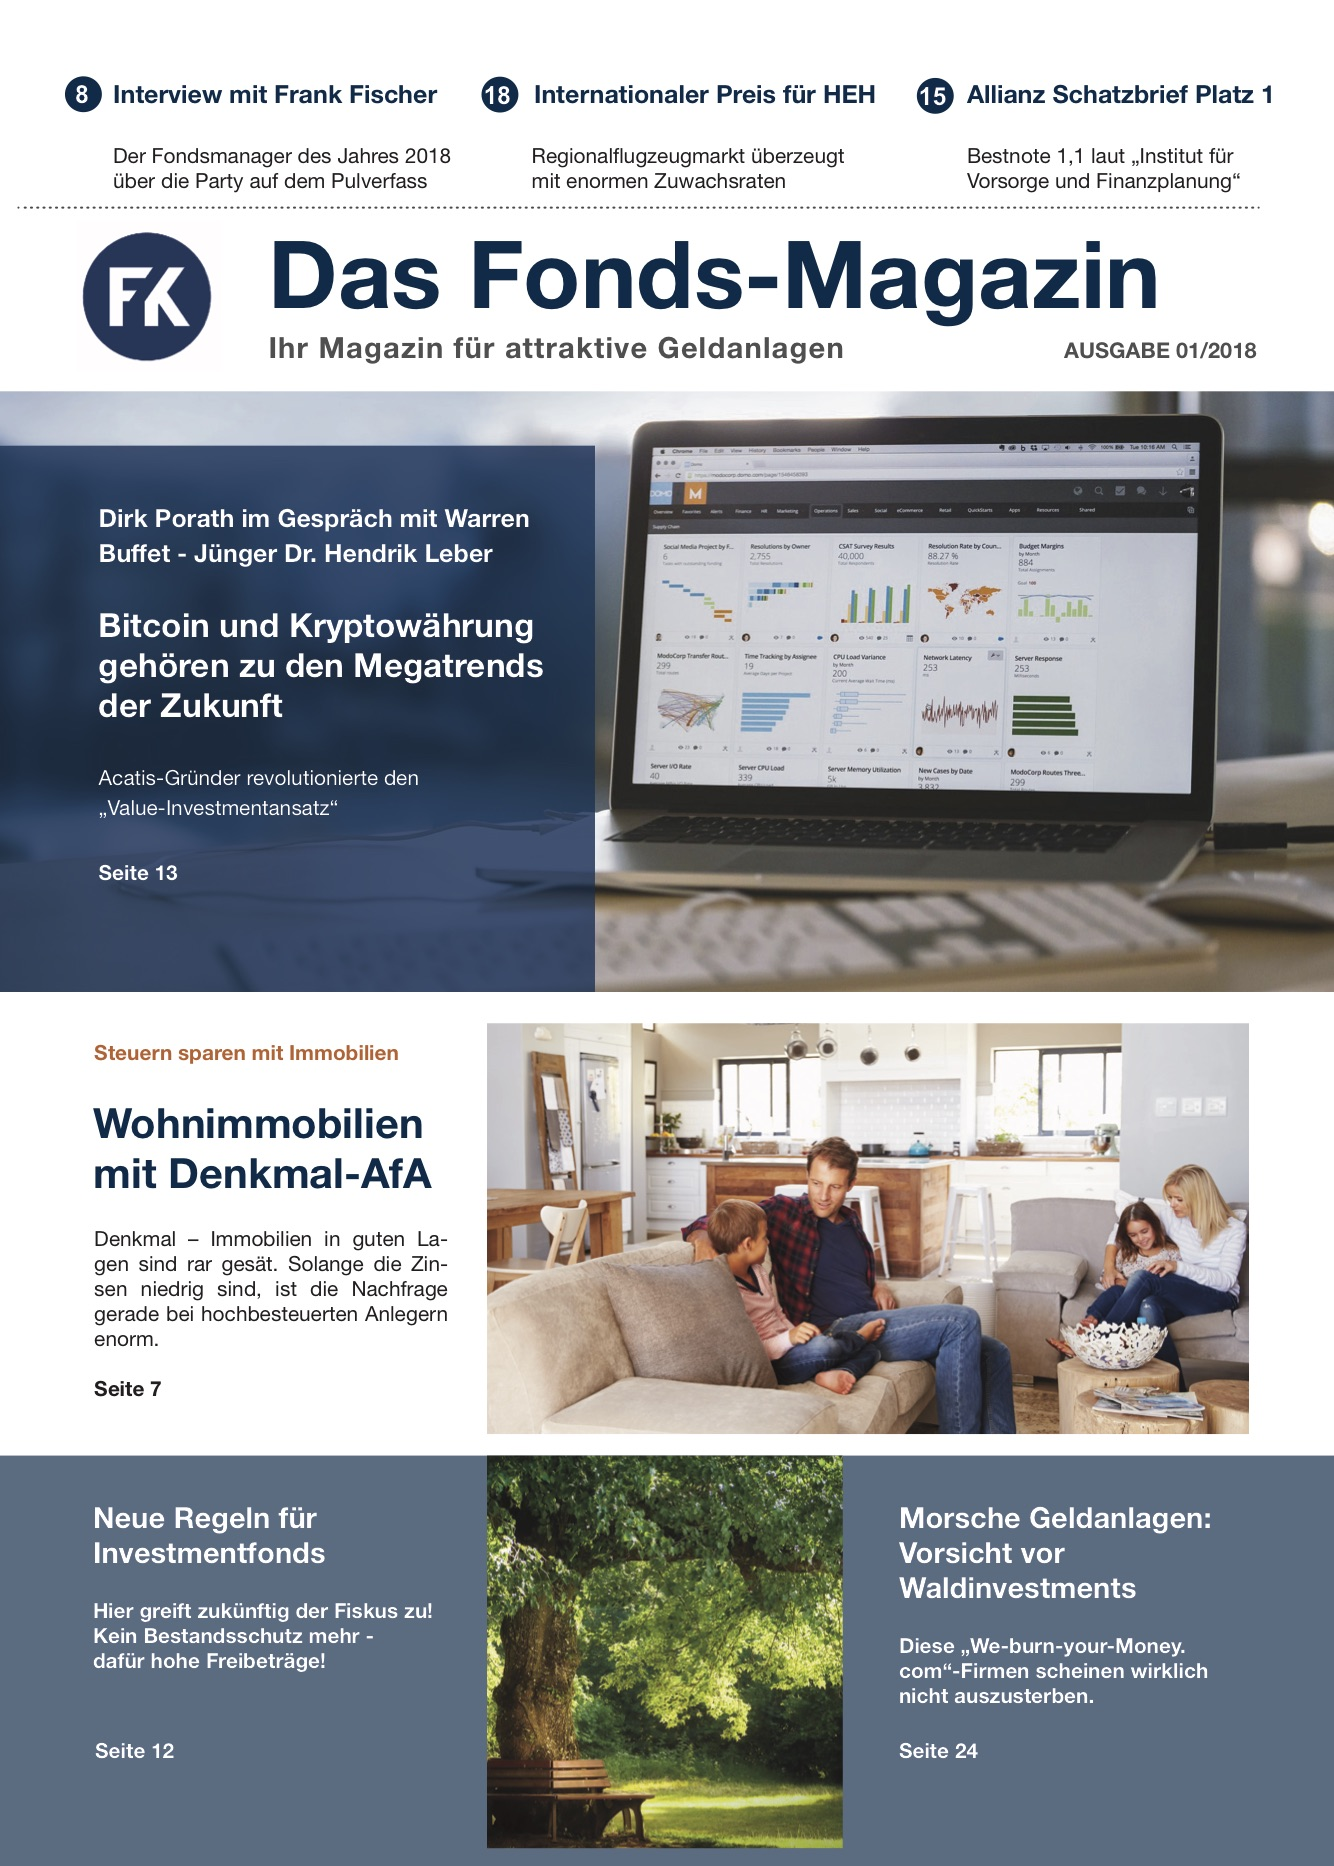 Das Fonds-Magazin